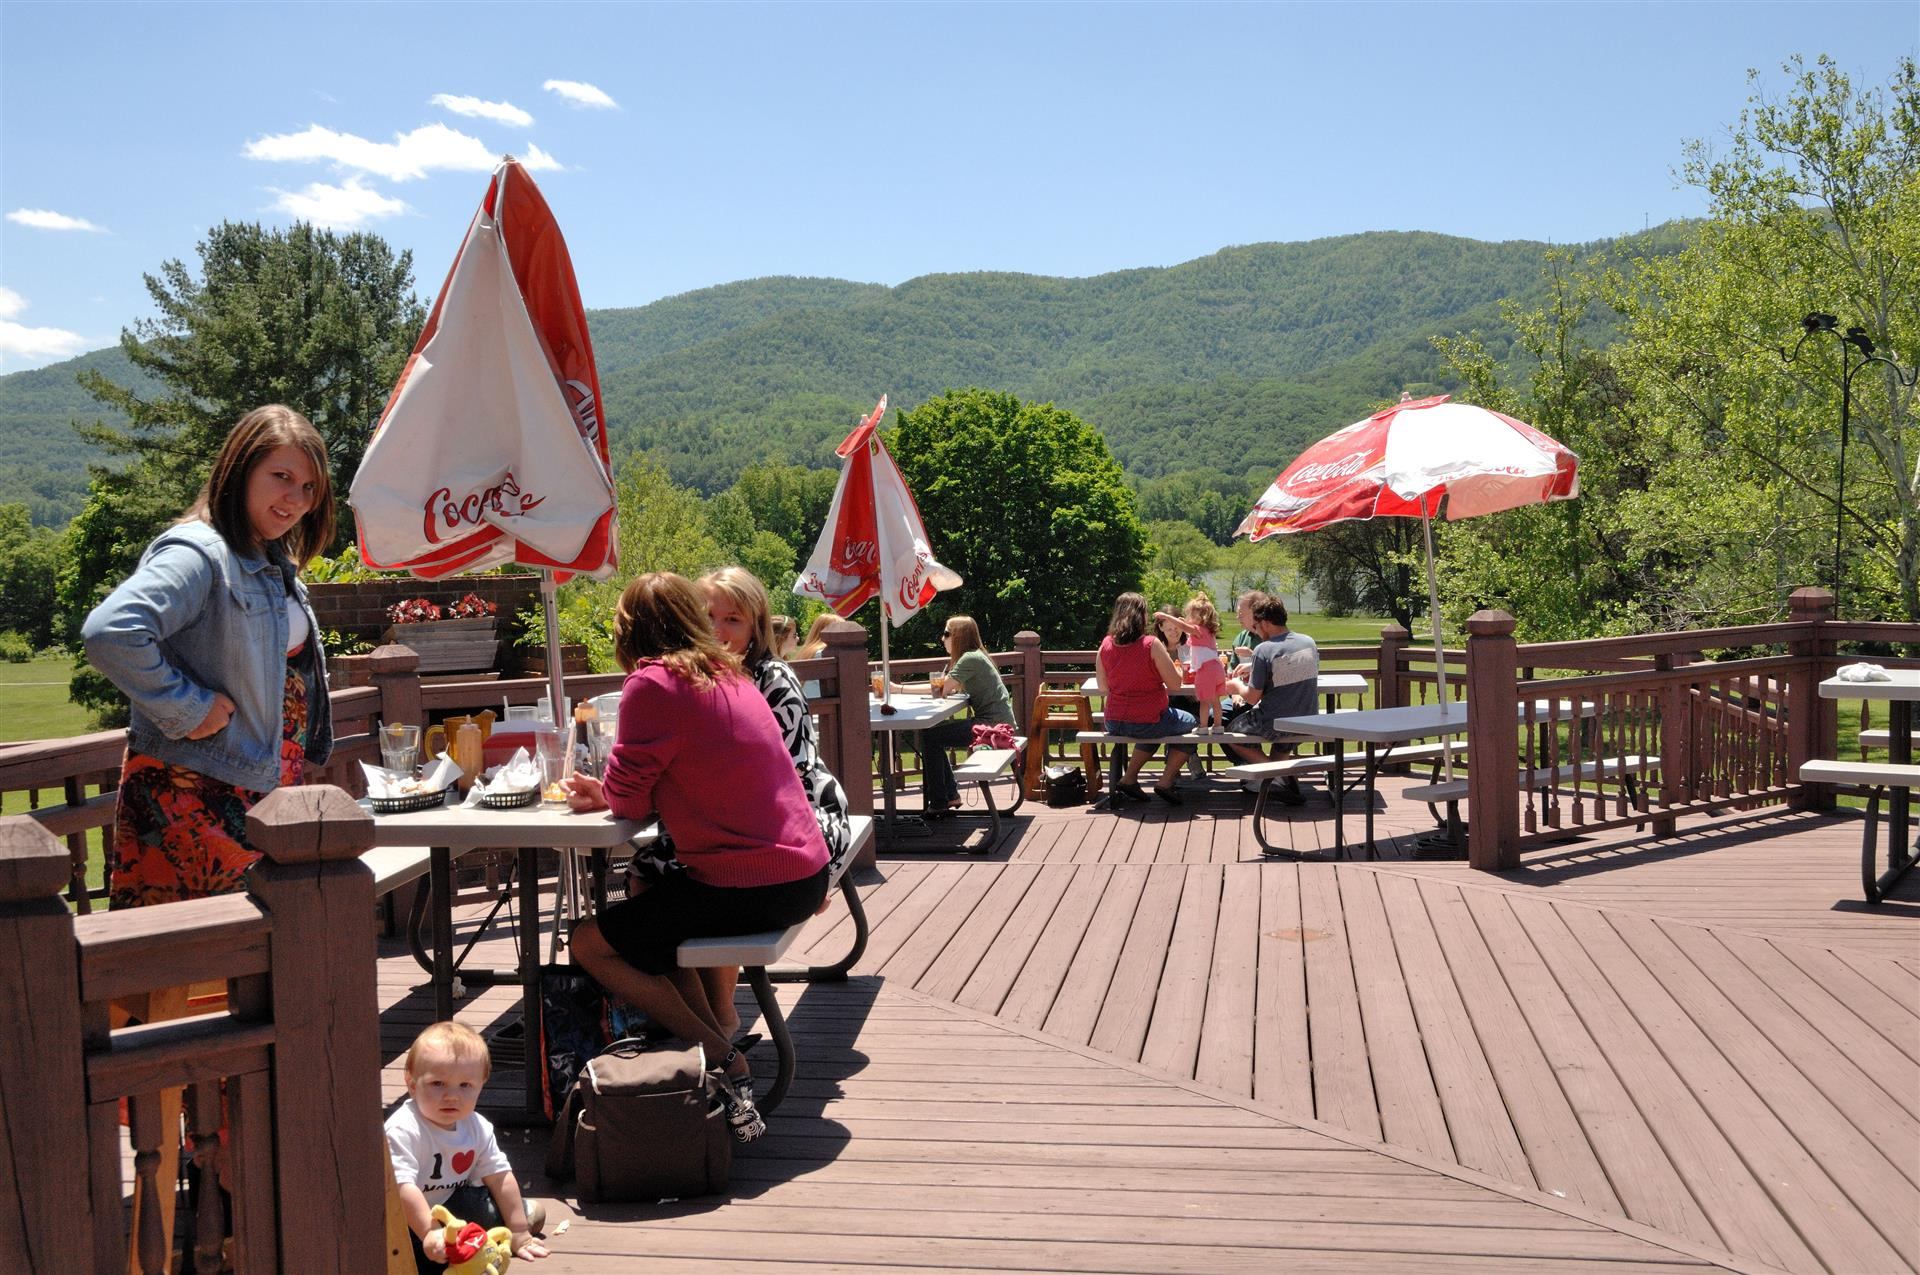 outside deck area with tables and umbrellas and a few people